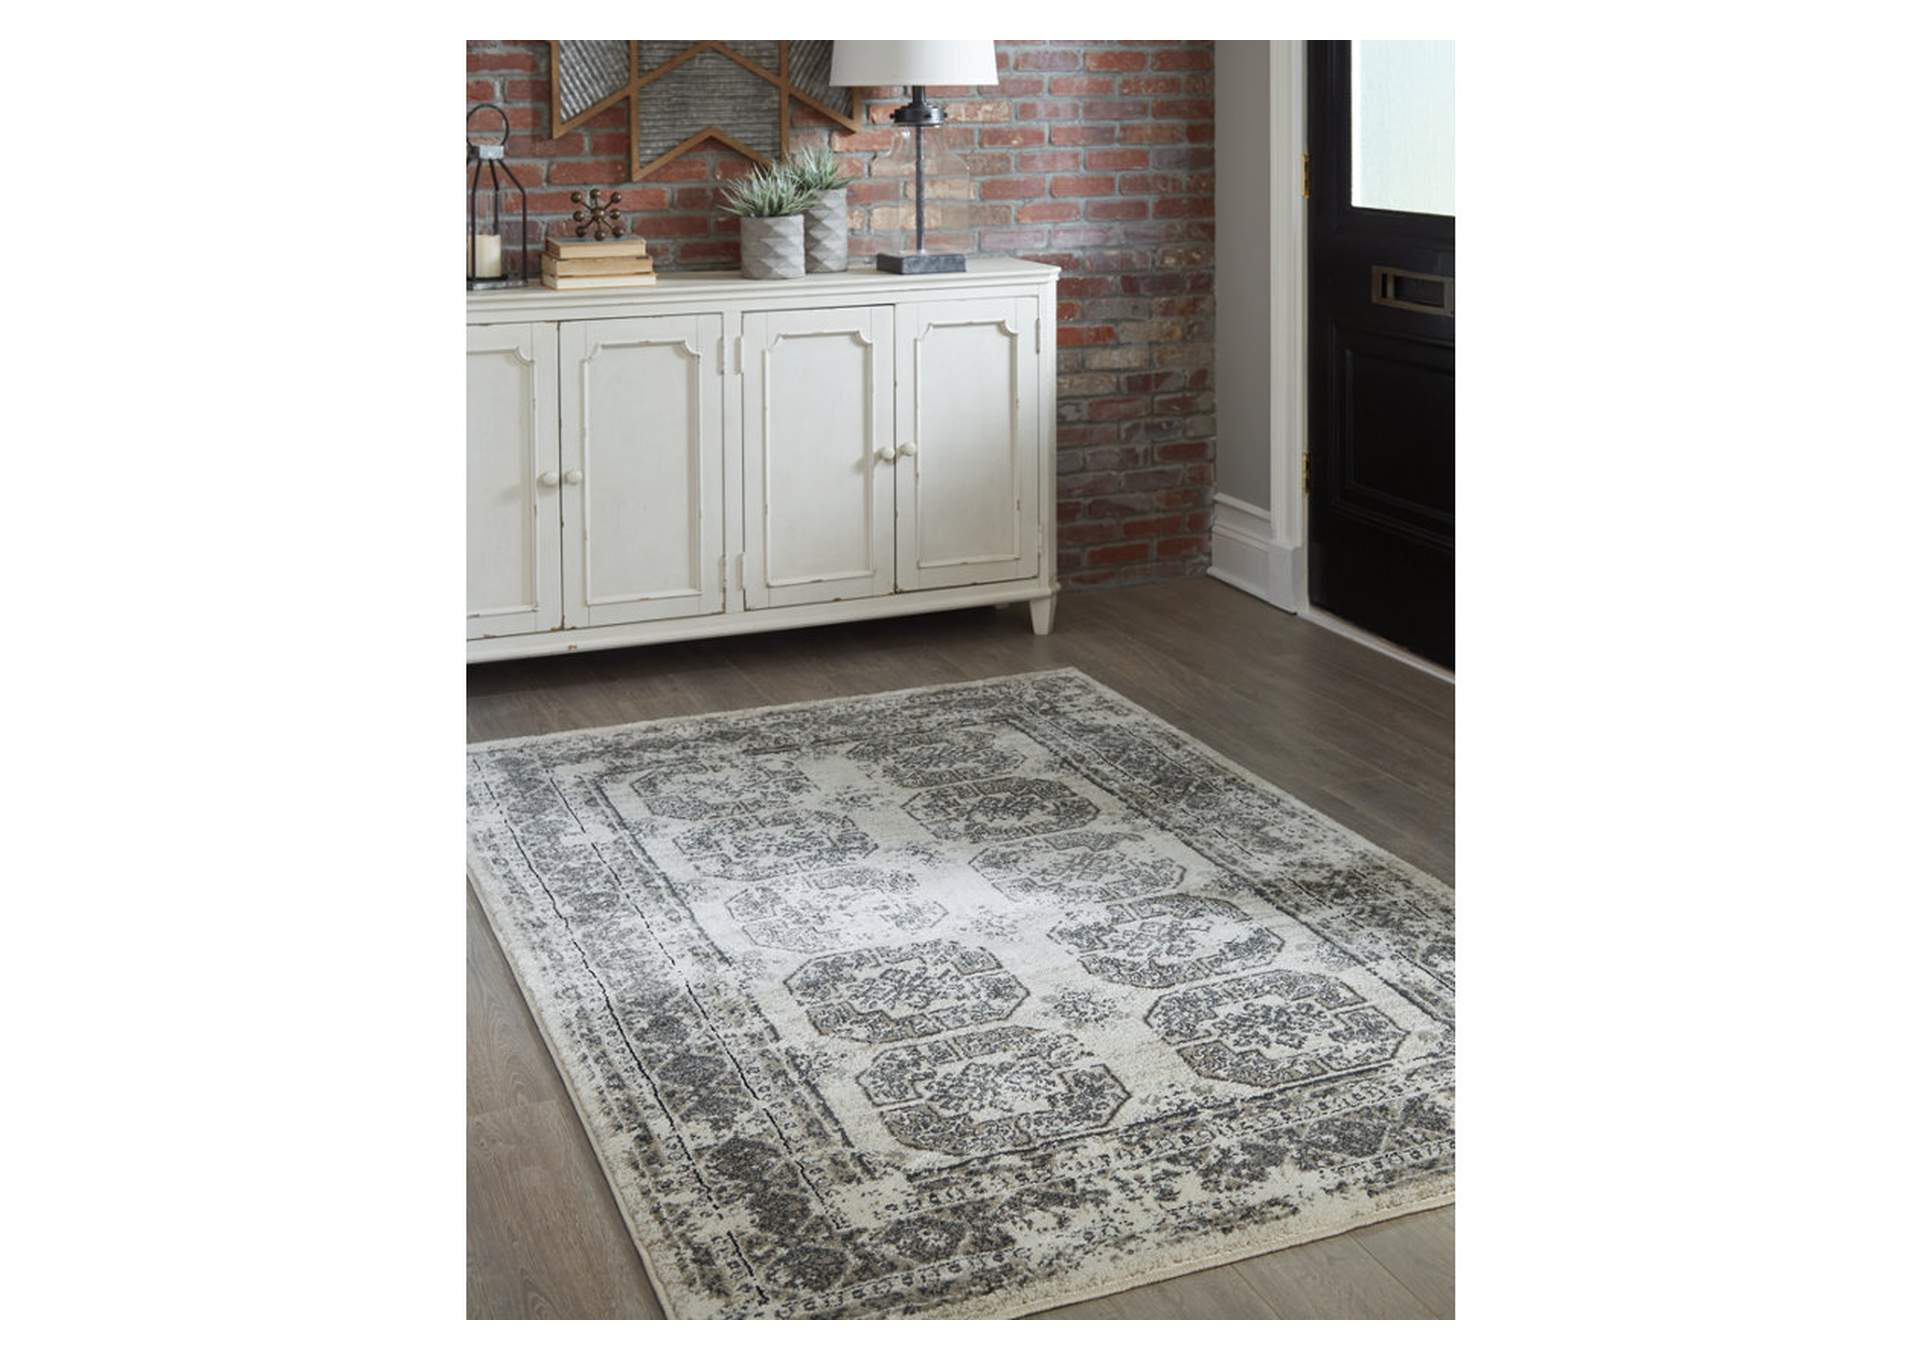 Jirou Gray/Taupe Medium Rug,Direct To Consumer Express